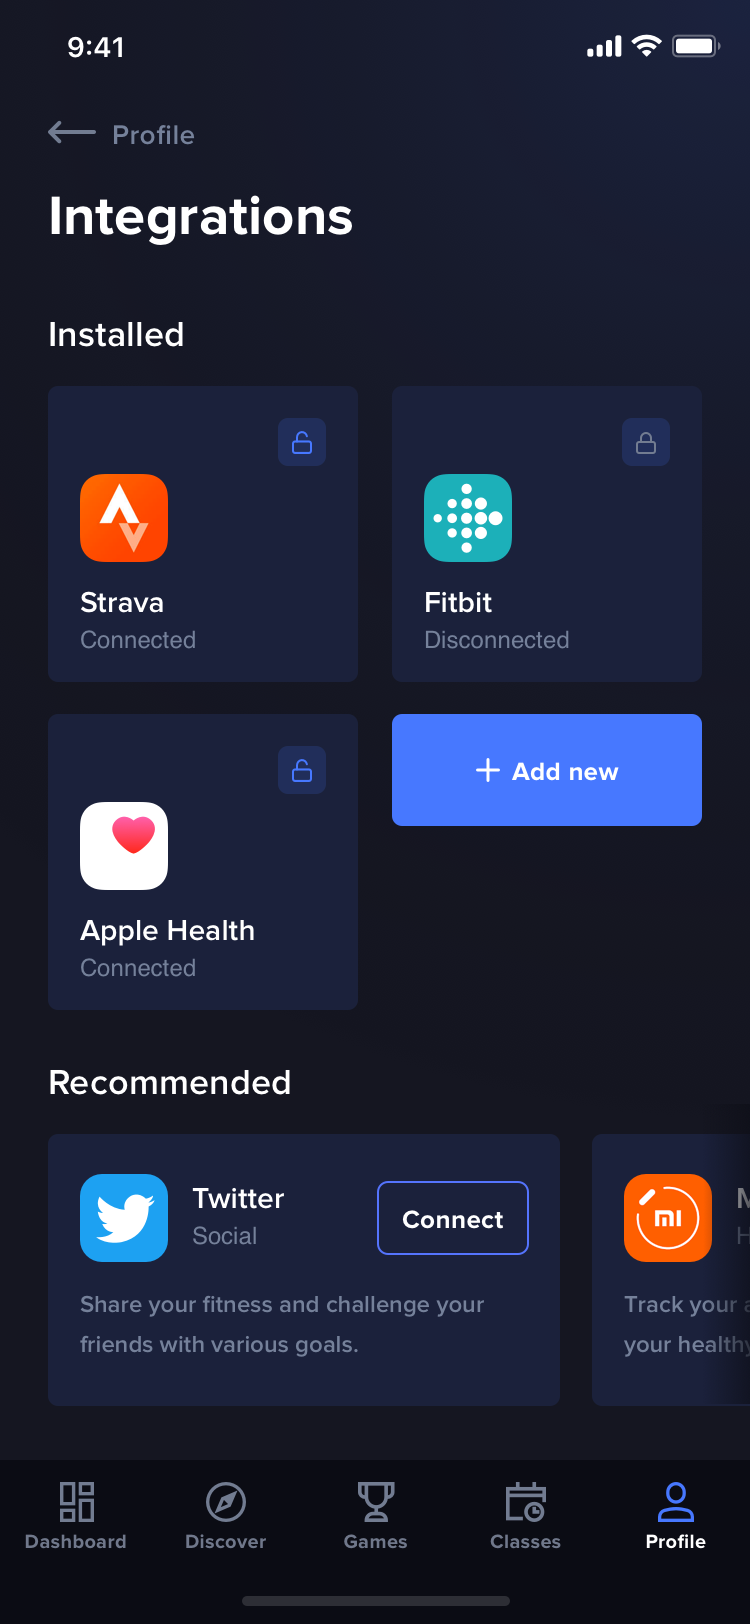 FitnessKingdom Integrations by Jakub Wojnar-Płeszka | ios ui